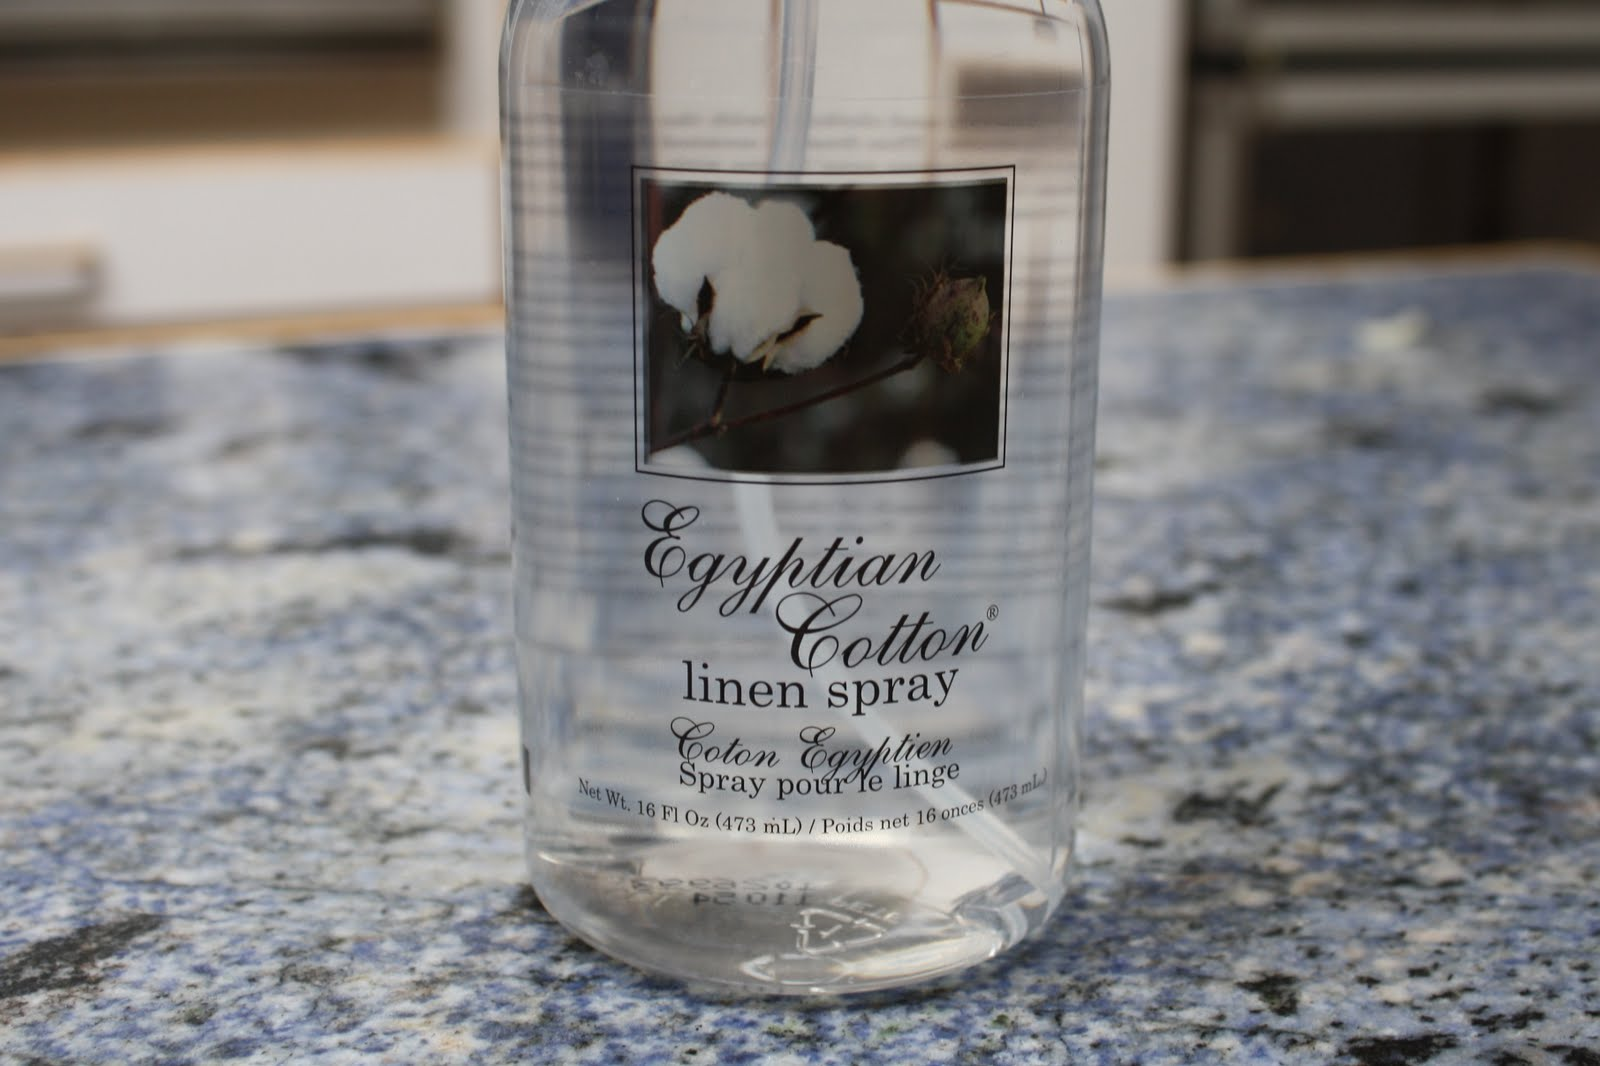 Egyptian Cotton Linen Spray Bed Bath And Beyond The Beauty Beat Sweet Smelling